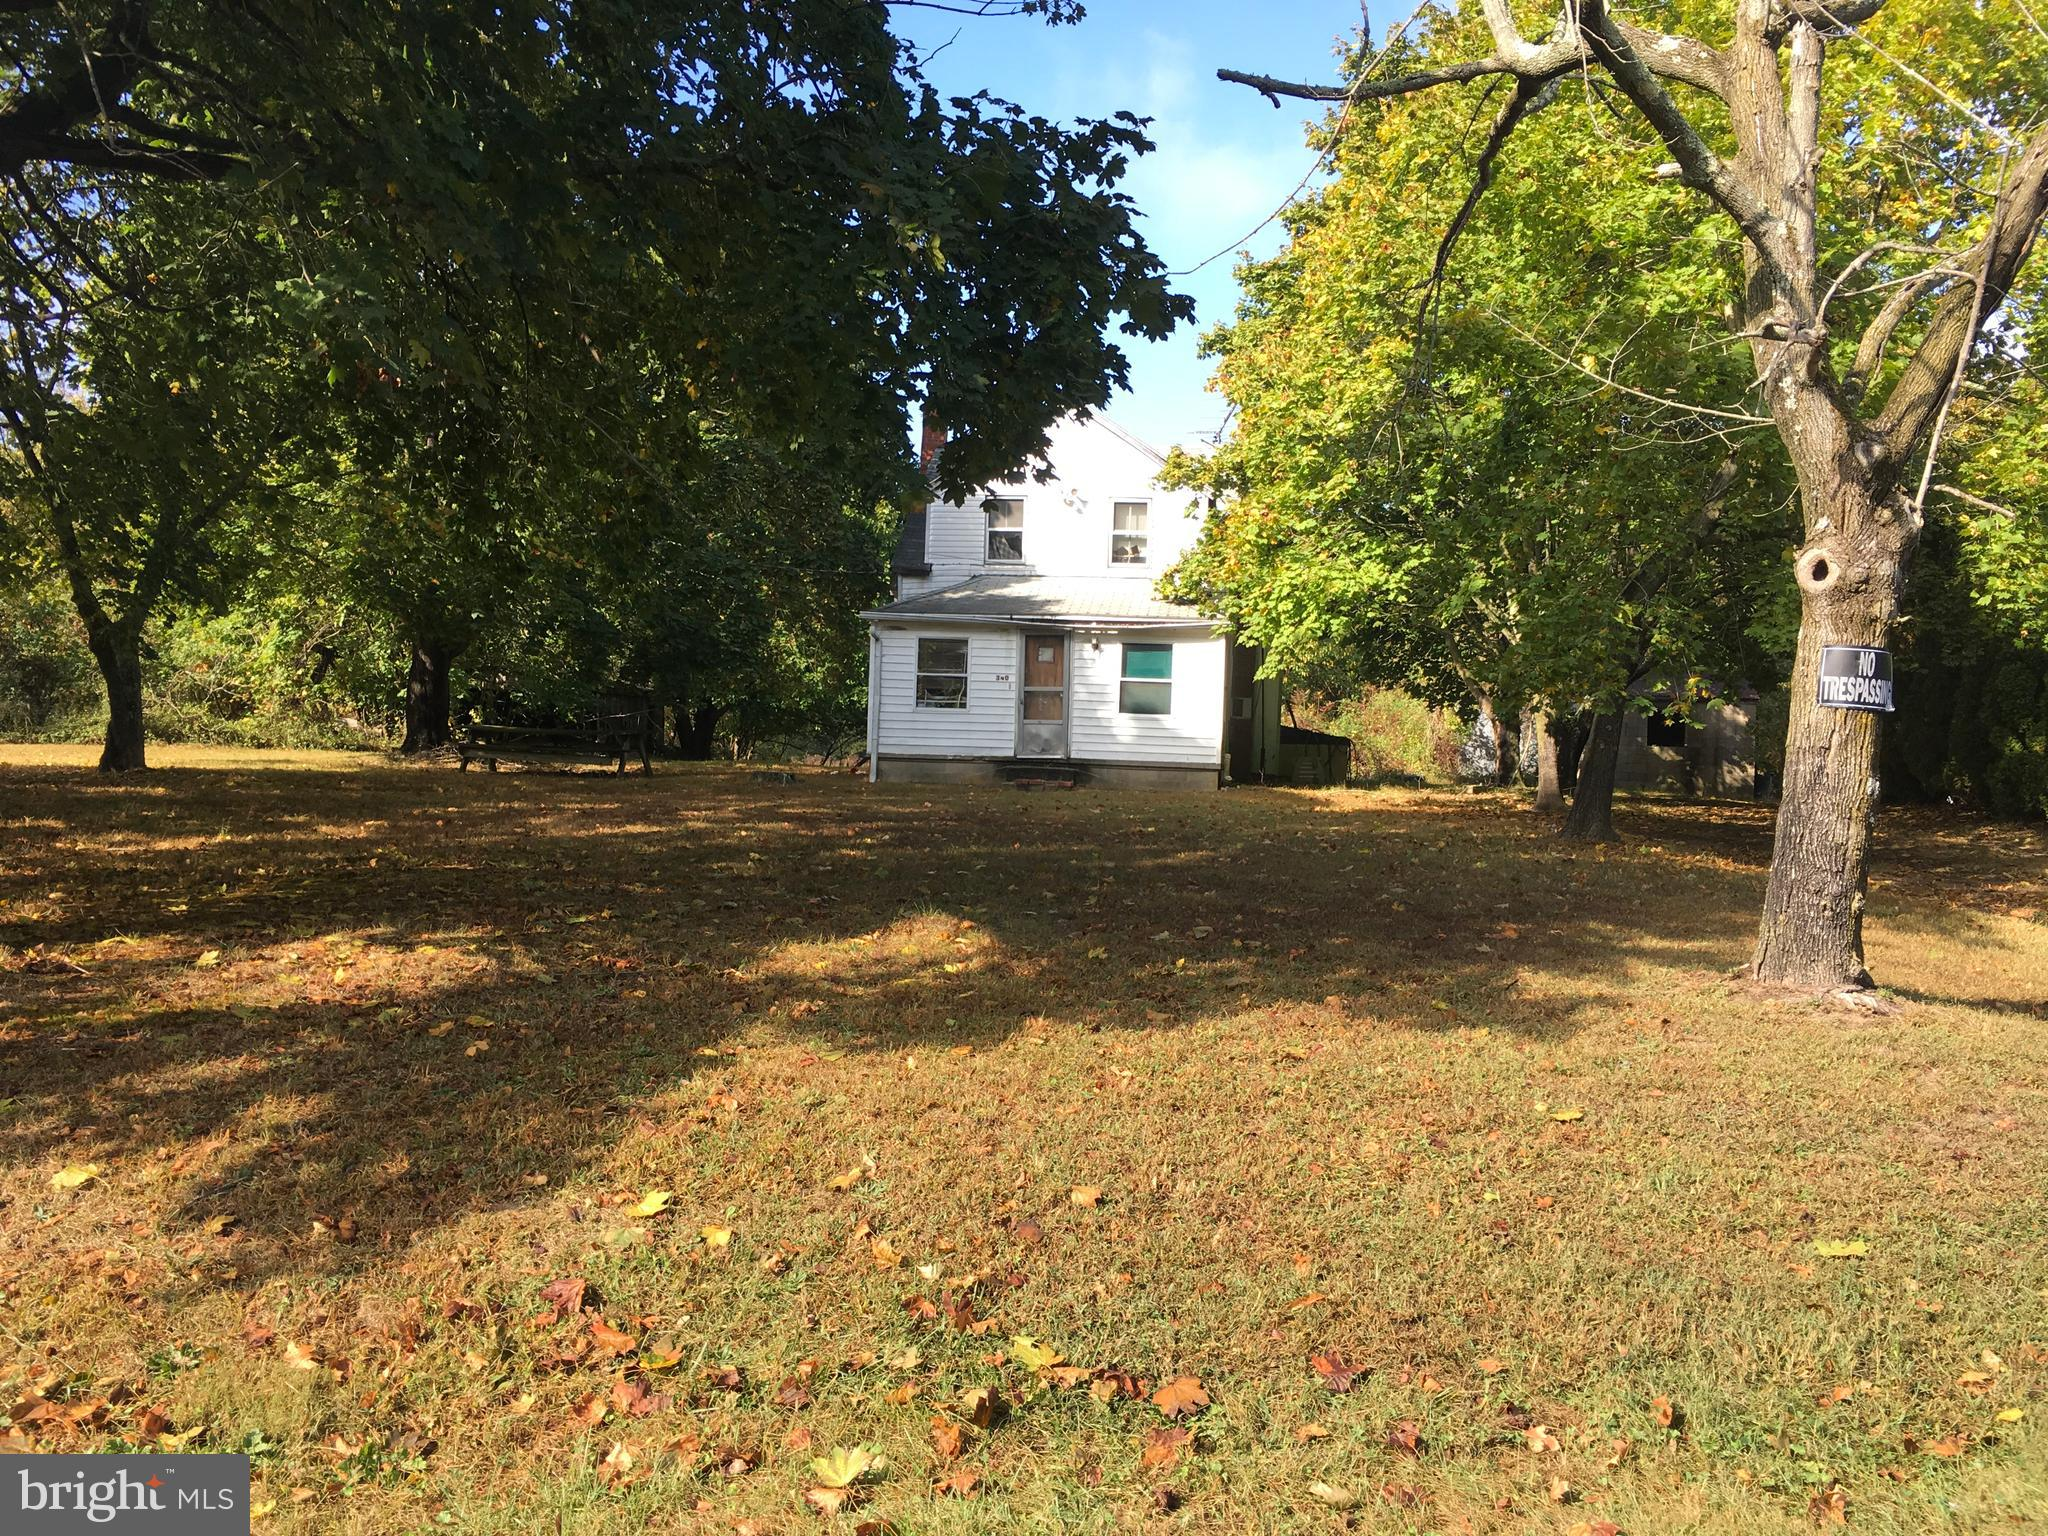 12.34 TOTAL ACRES, Includes 2 Parcels in Queen Anne's County.   Build your own home, hunting, fishin